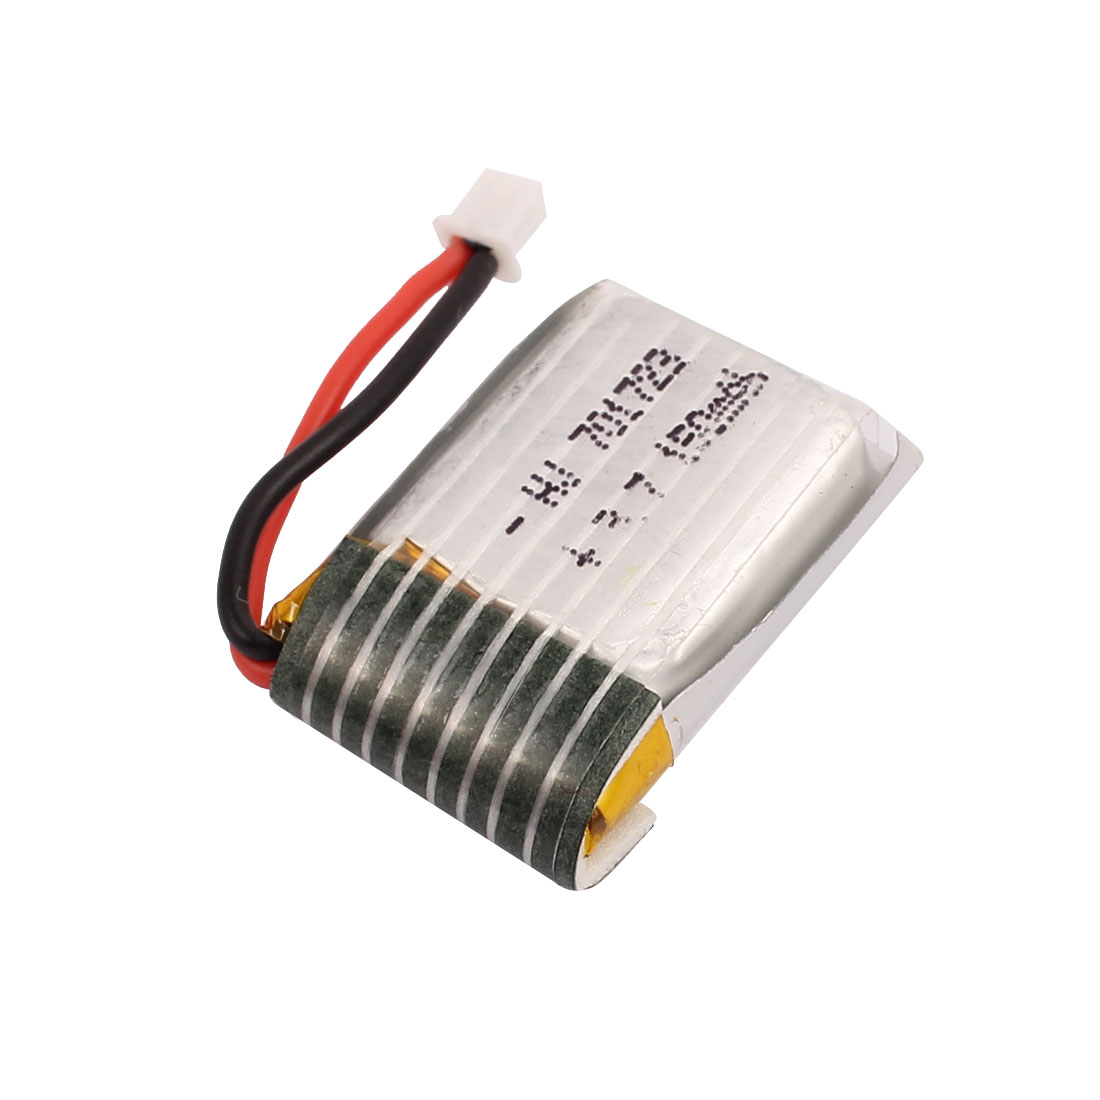 3.7V 150mAh Charging Lithium Polymer Li-po Battery for RC Airplane Aircraft